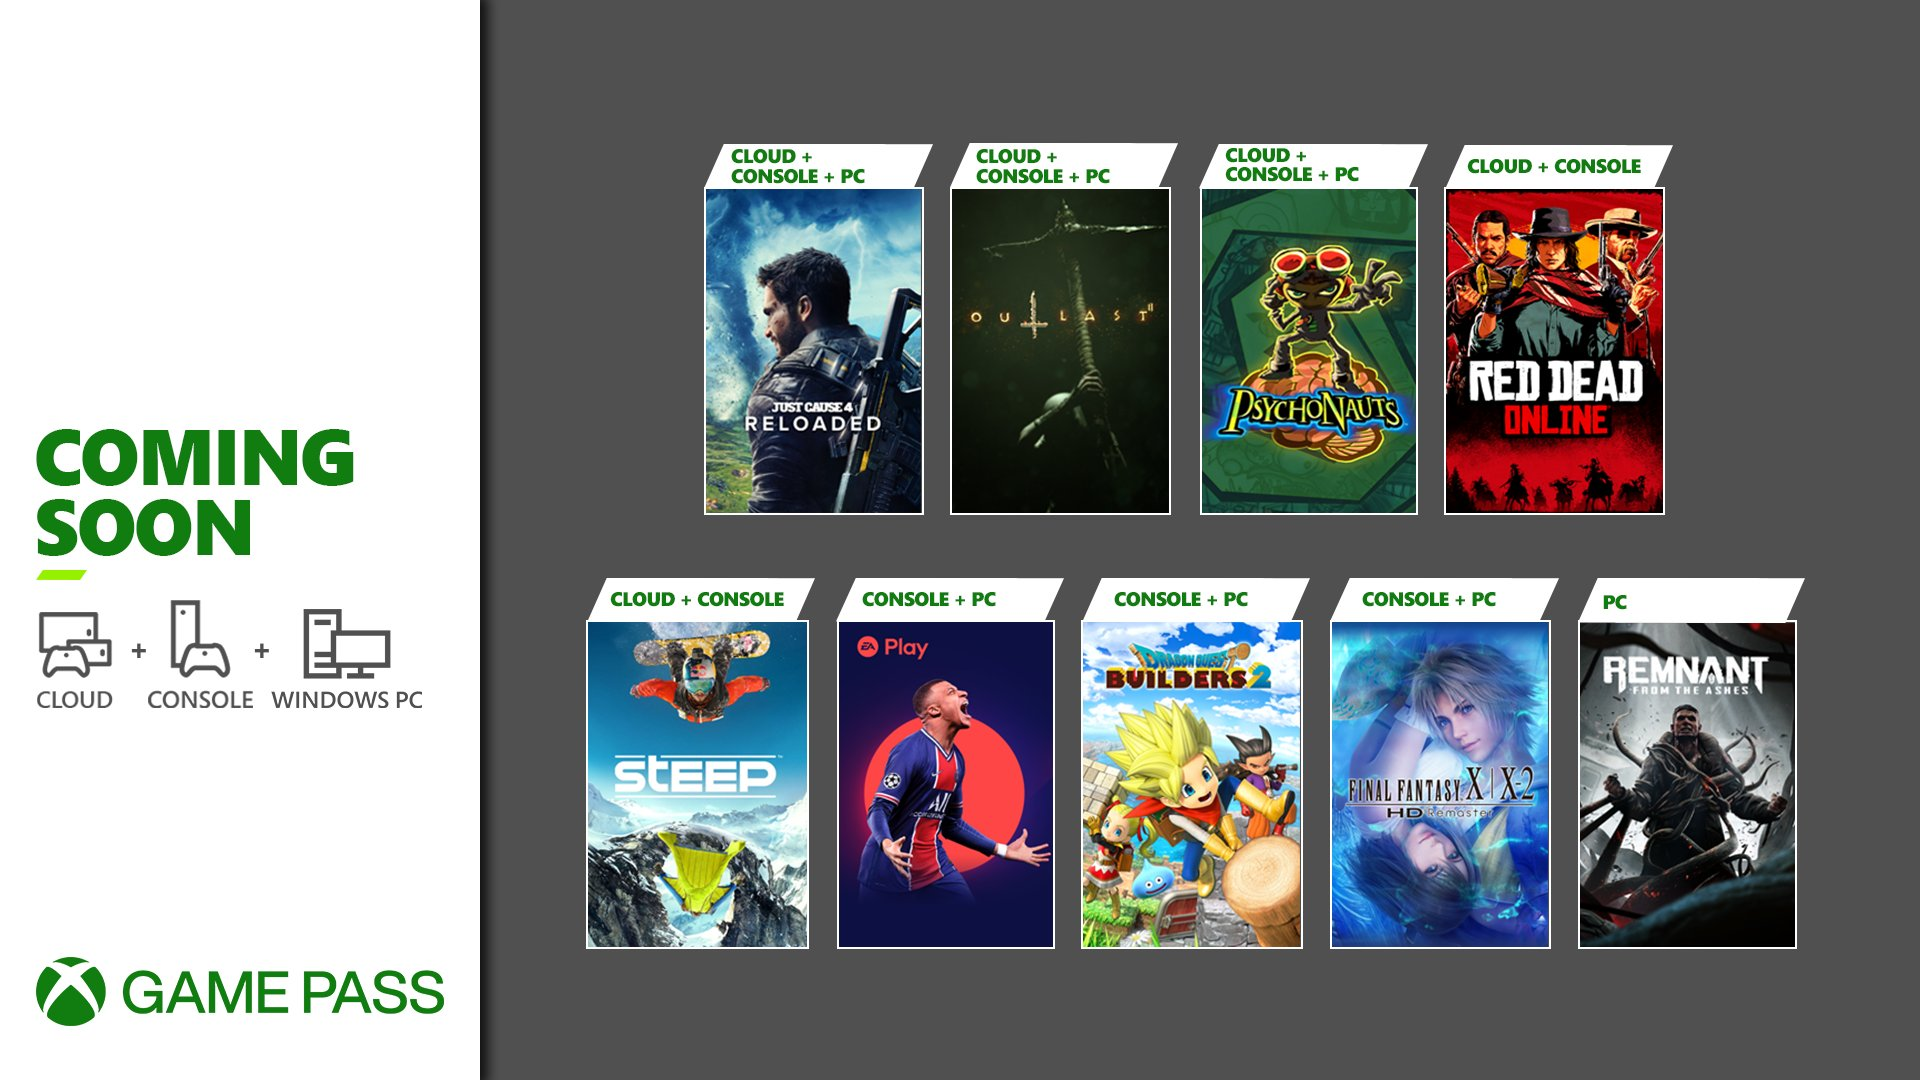 Just Cause 4: Reloaded, Outlast 2, Psychonauts, Red Dead Online, Steep, FIFA 21 (EA Play), Dragon Quest Builders 2, Final Fantasy X/X-2, and Remnant: From the Ashes are coming soon to Xbox Game Pass for PC.